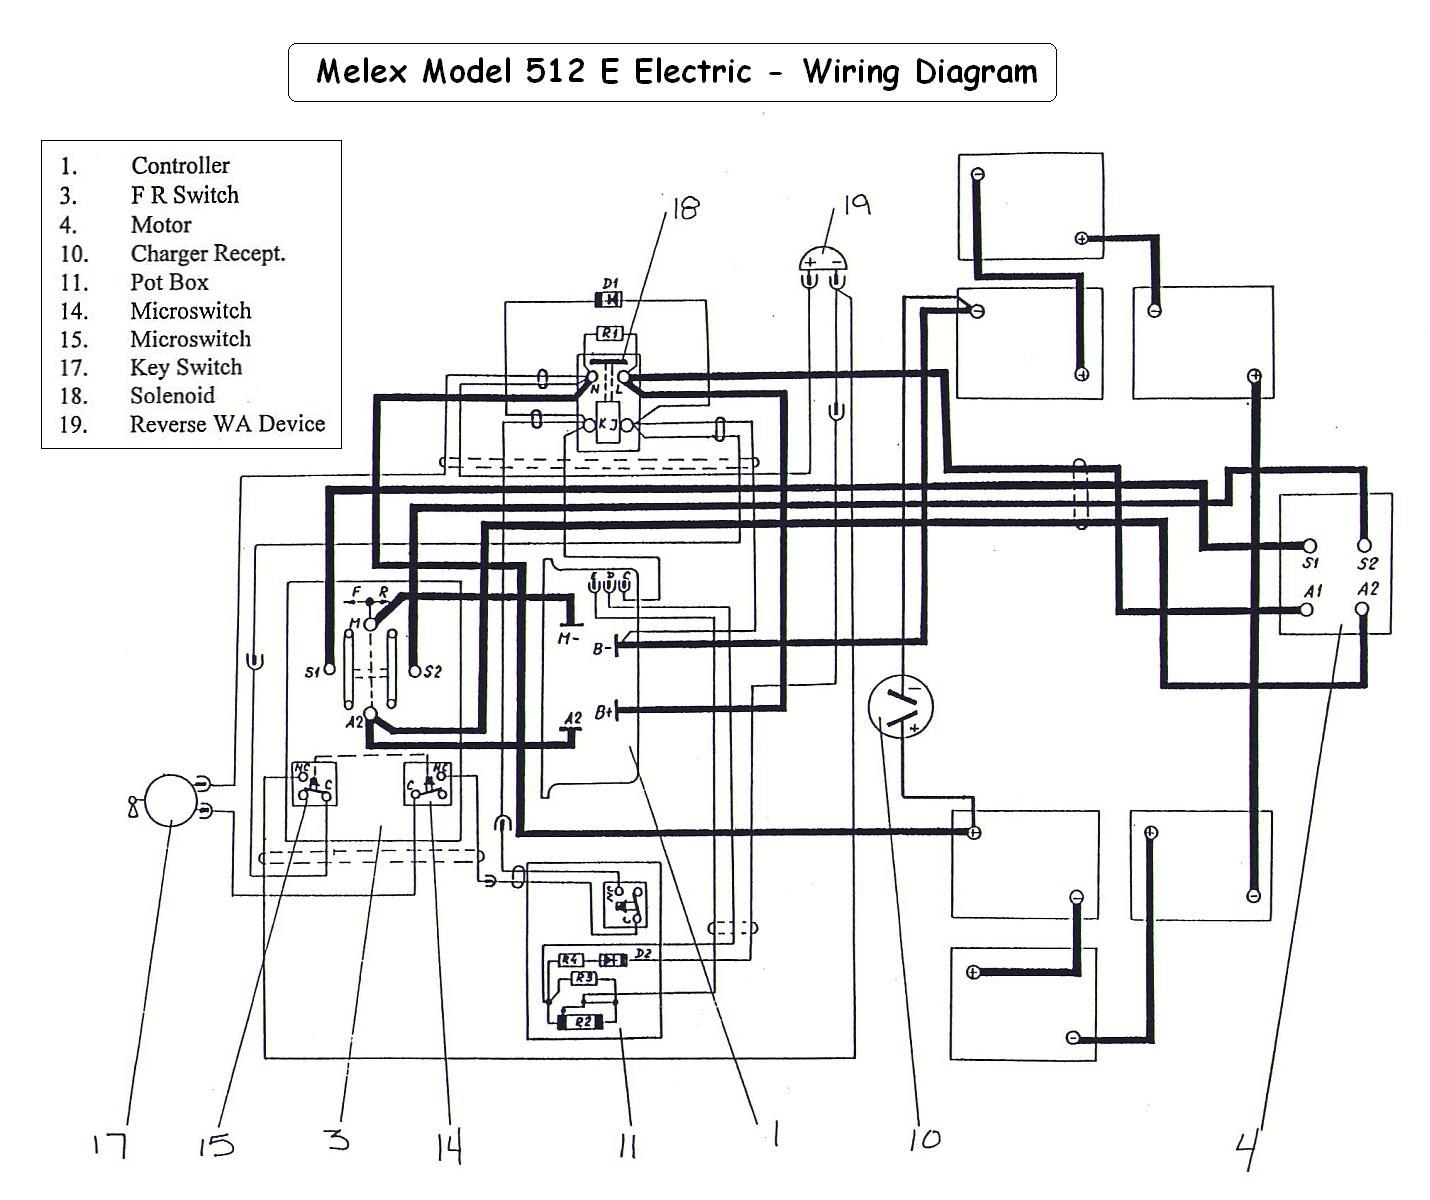 [SCHEMATICS_48IS]  EFFD2 Ezgo Resistor Coil Cart Wiring Diagram | Wiring Library | 1989 Ezgo Golf Cart Wiring Diagram |  | Wiring Library